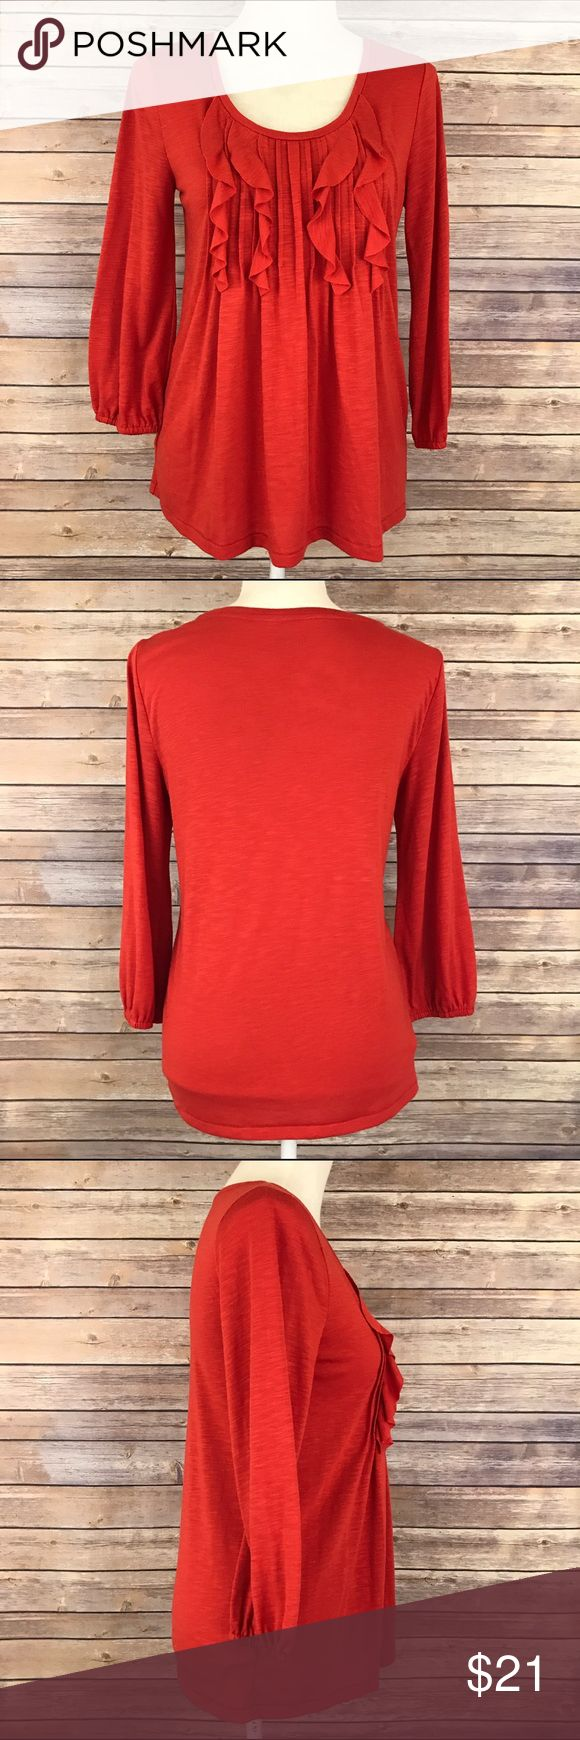 Ann Taylor Loft Burnt Orange Ruffle Tiered Top S Bust: Length:  Condition: No Rips; No Stains  50% Viscose 50% Polyester   📦I ship orders within 24 Hours! {Except Weekends}📦  🚫No Trades🚫No Holds🚫 LOFT Tops Blouses